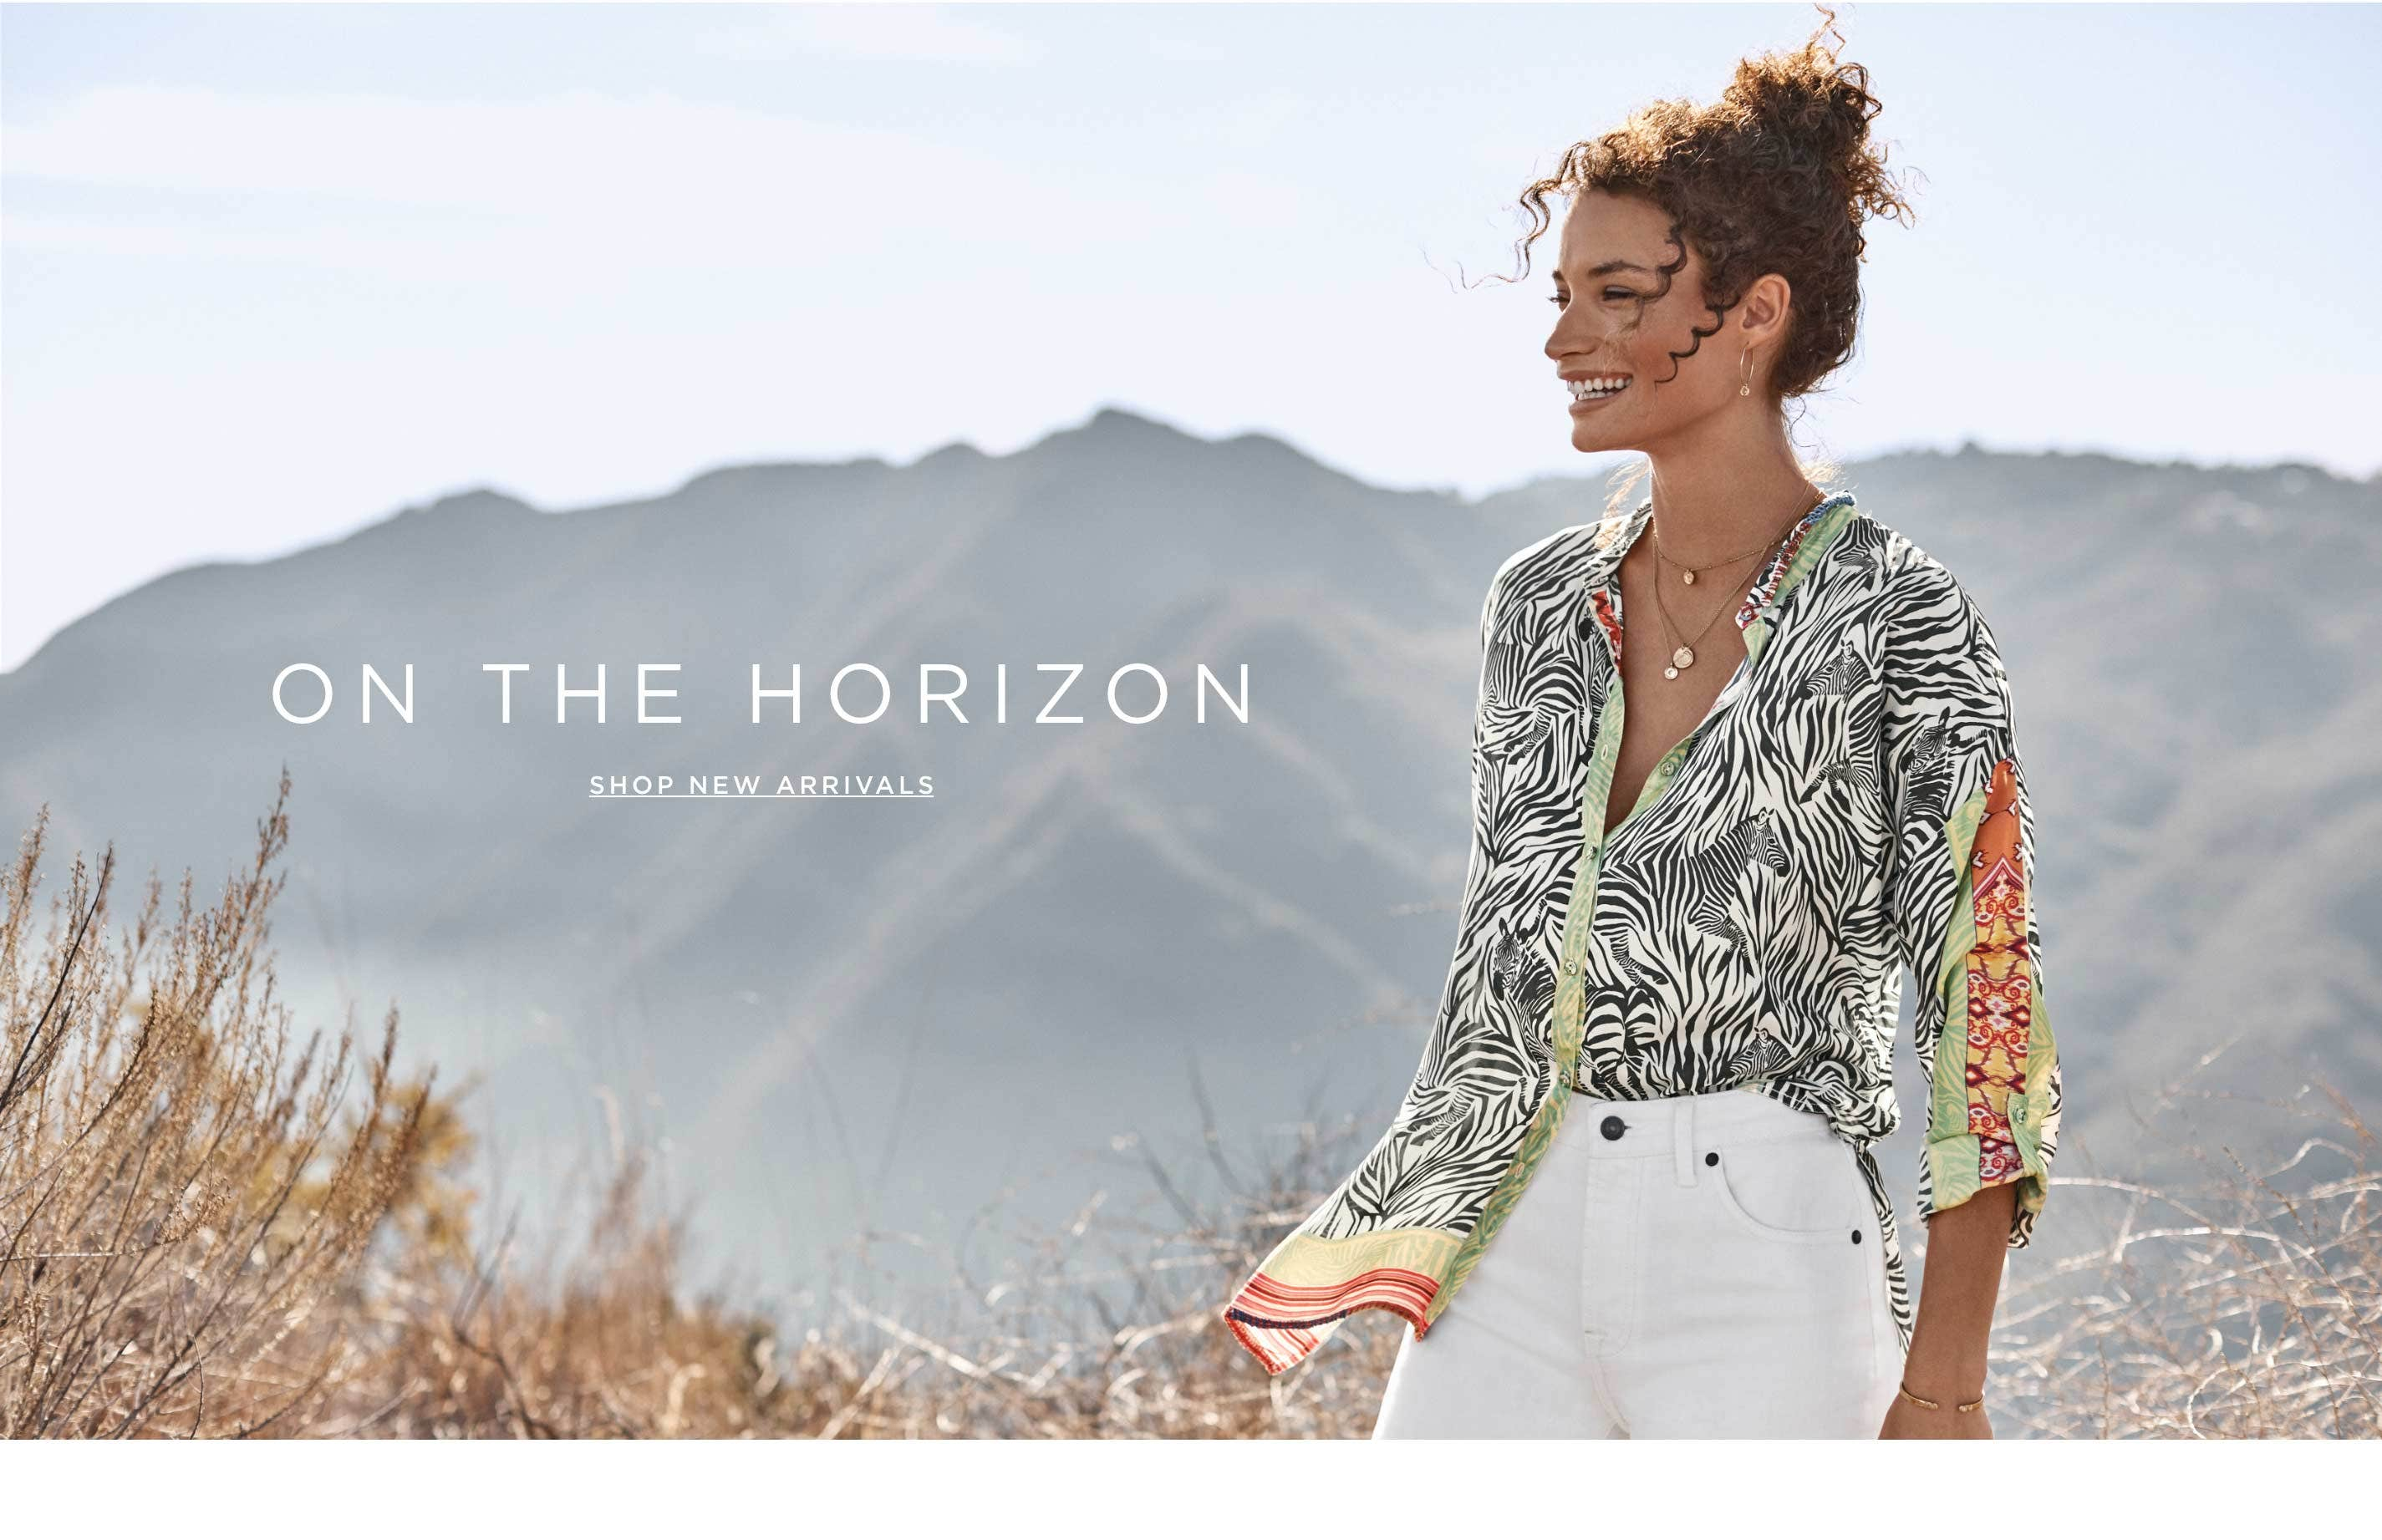 On the Horizon - Shop New Arrivals